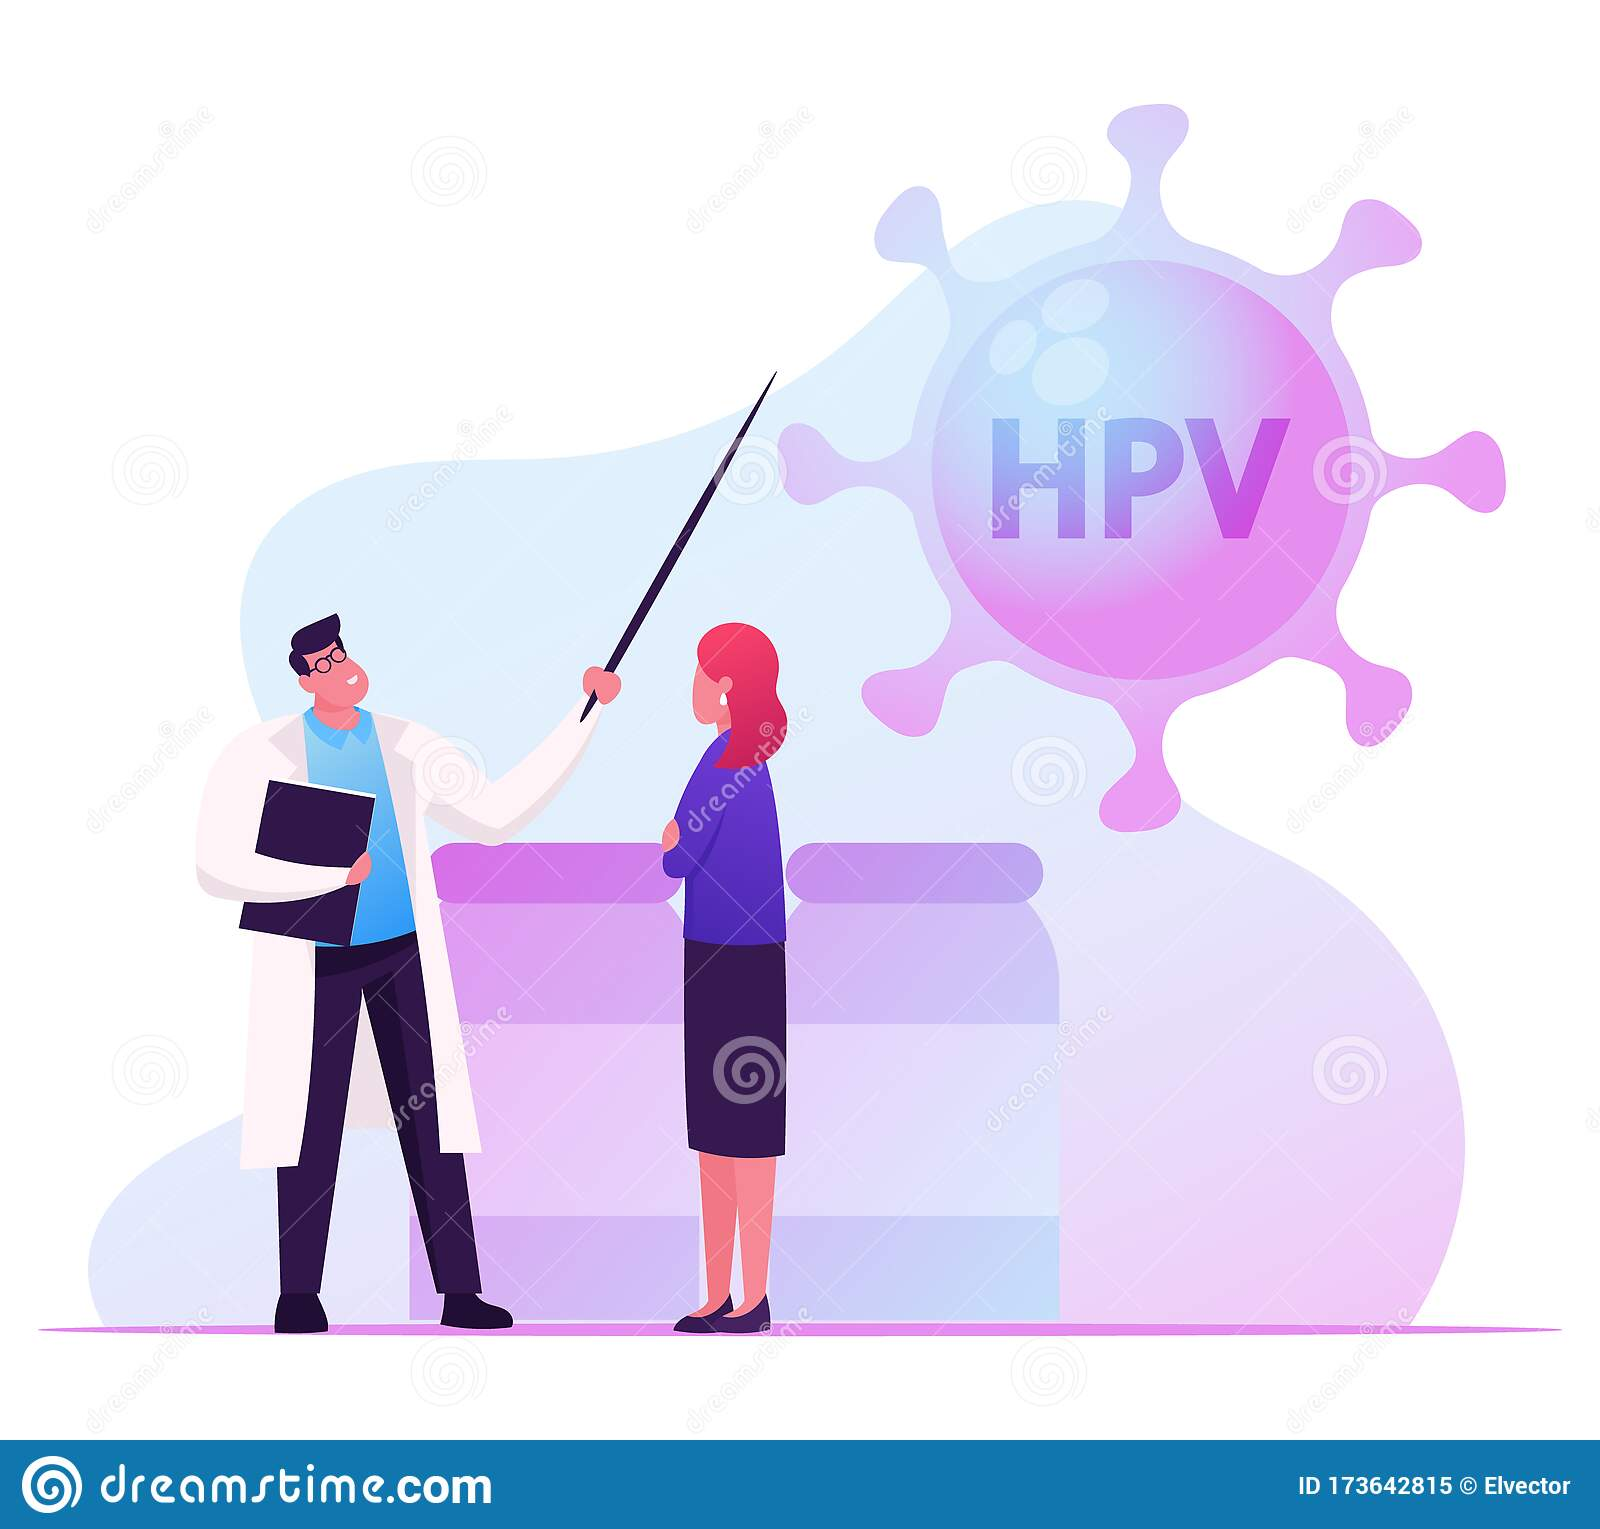 Hpv wart doctor. Hpv wart doctor